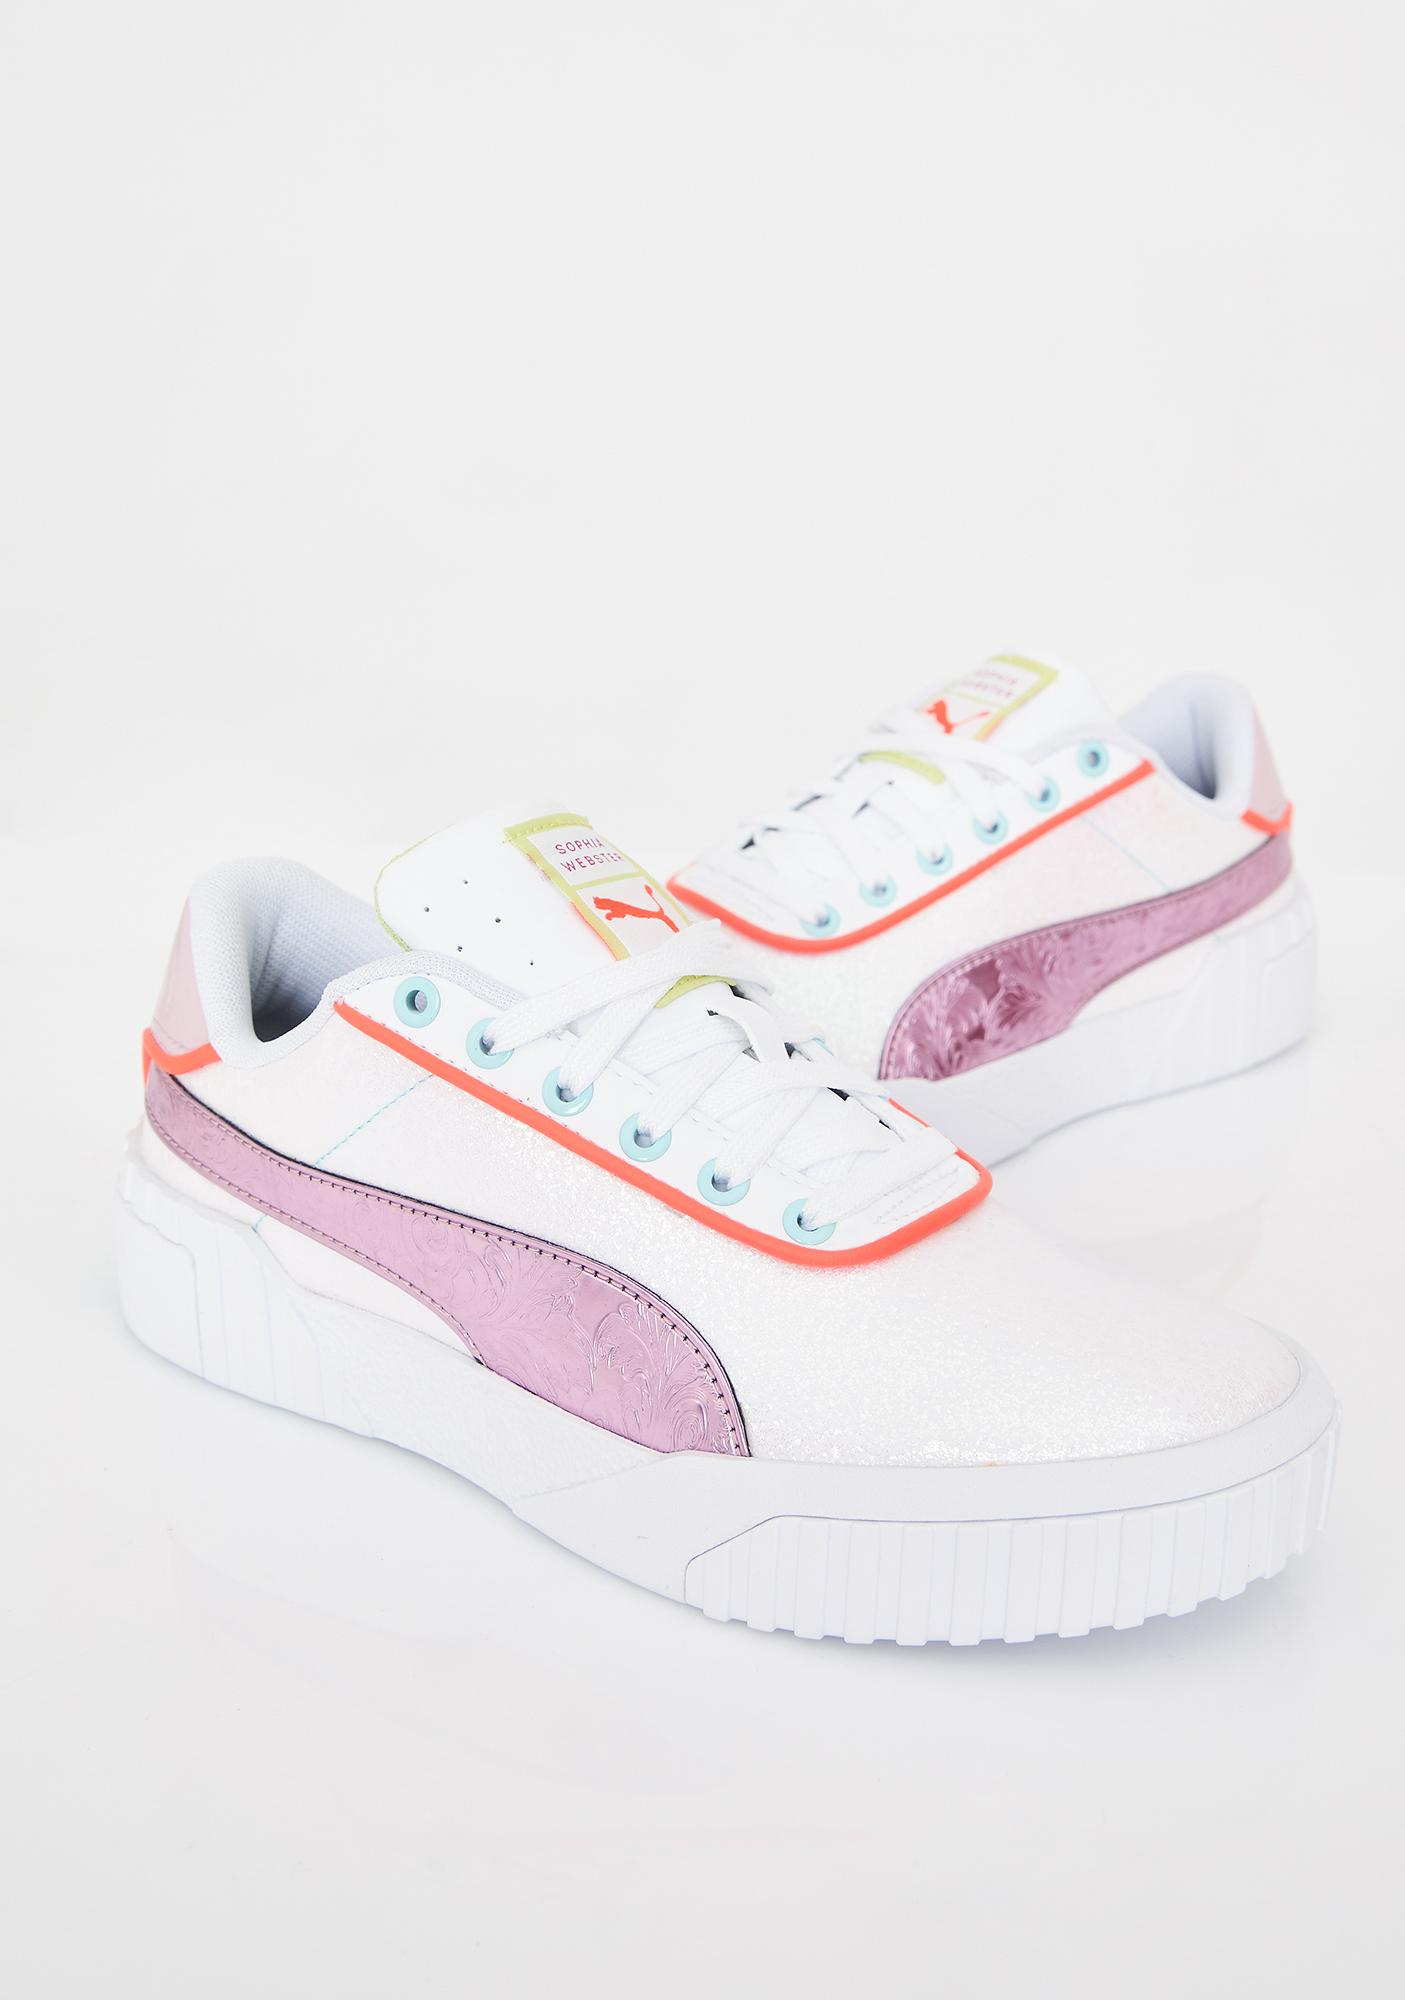 PUMA x Sophia Webster Cali Sneakers